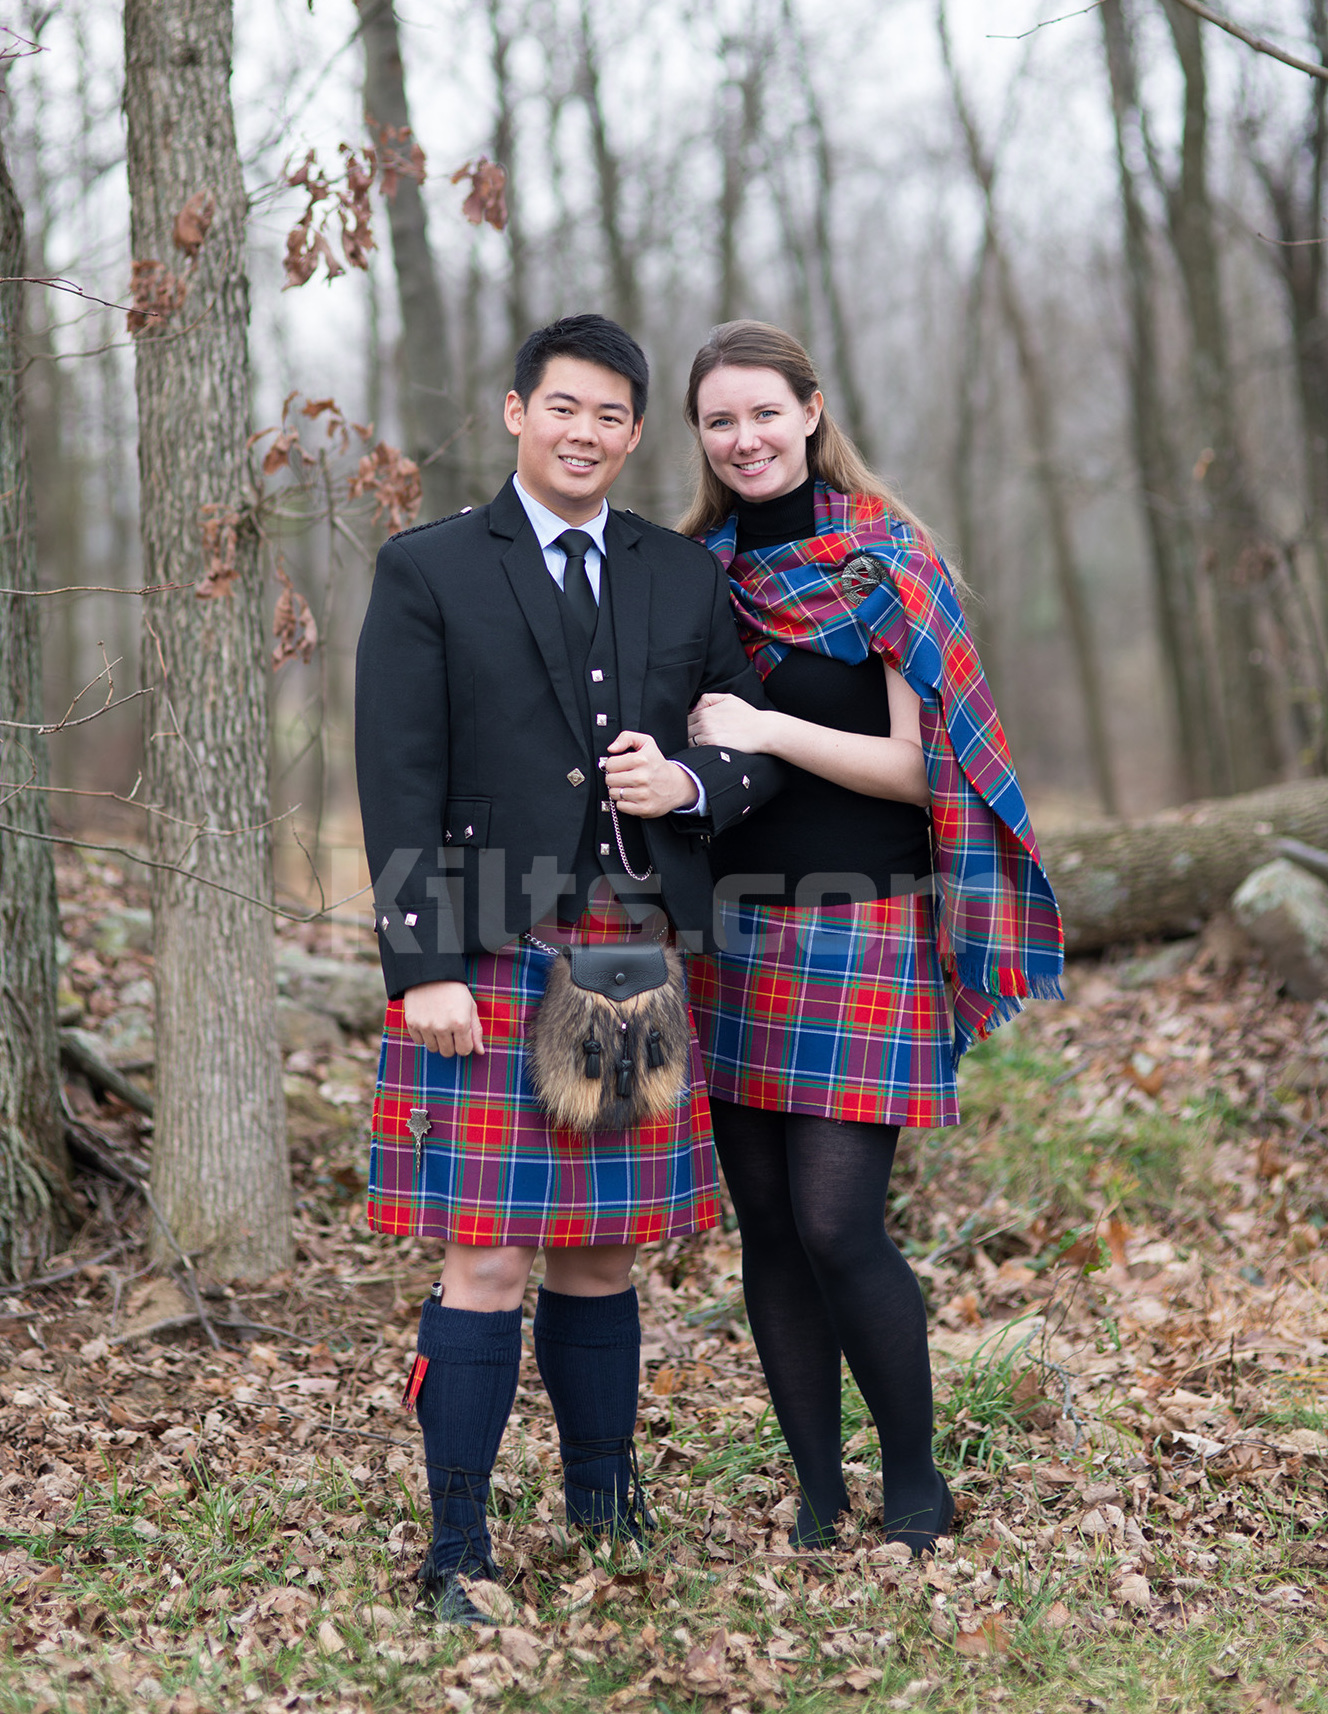 Looking for a Custom Woven Tartan Kilt for sale?